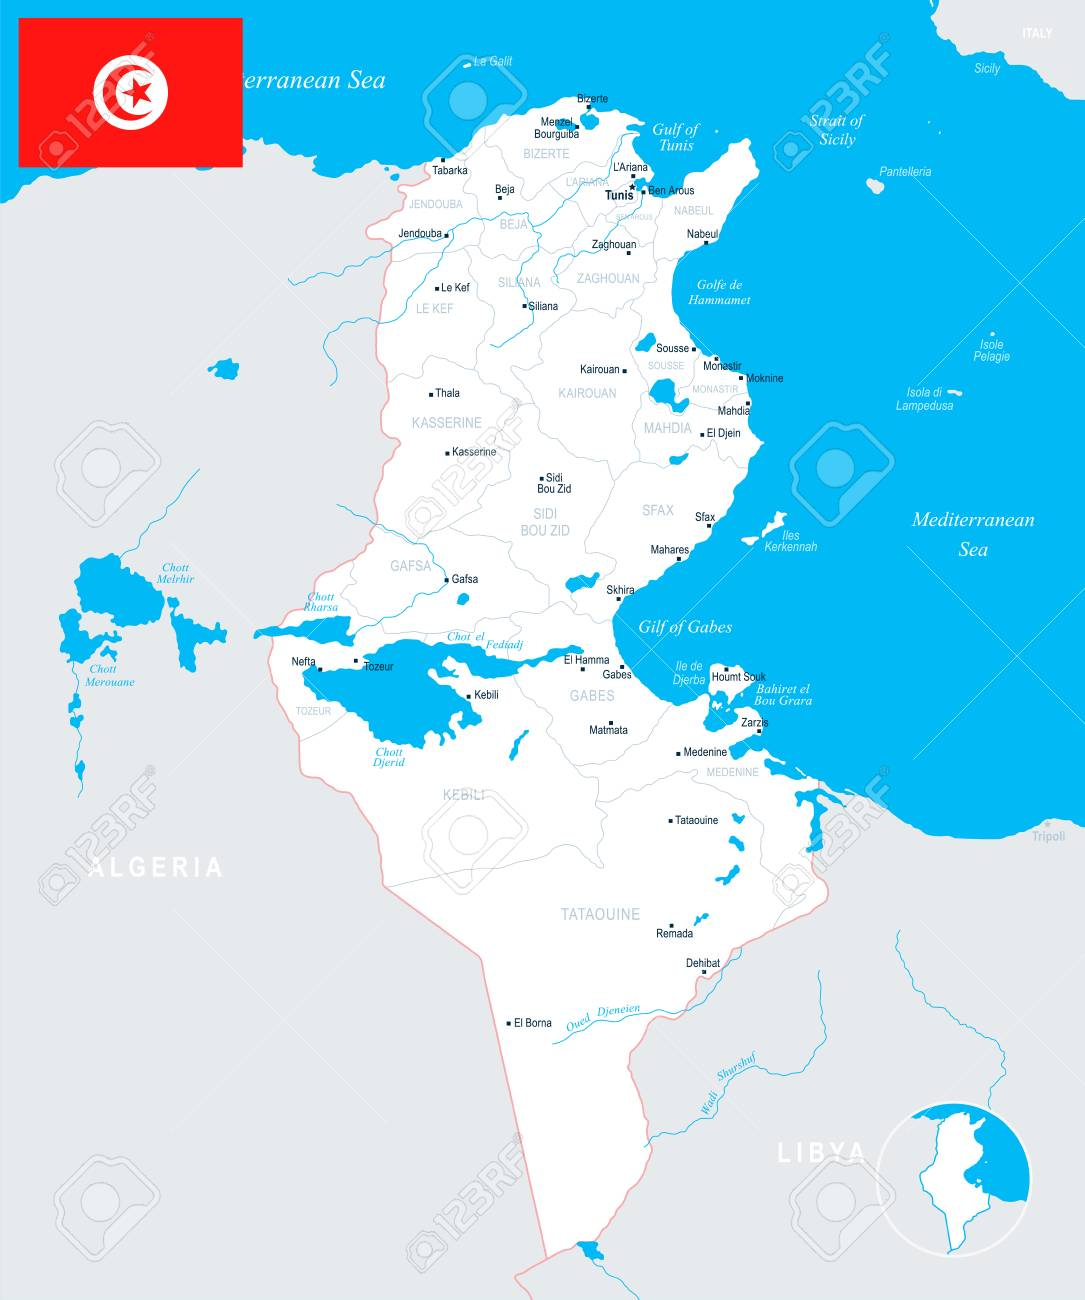 Tunisia map and flag - High Detailed Vector Illustration